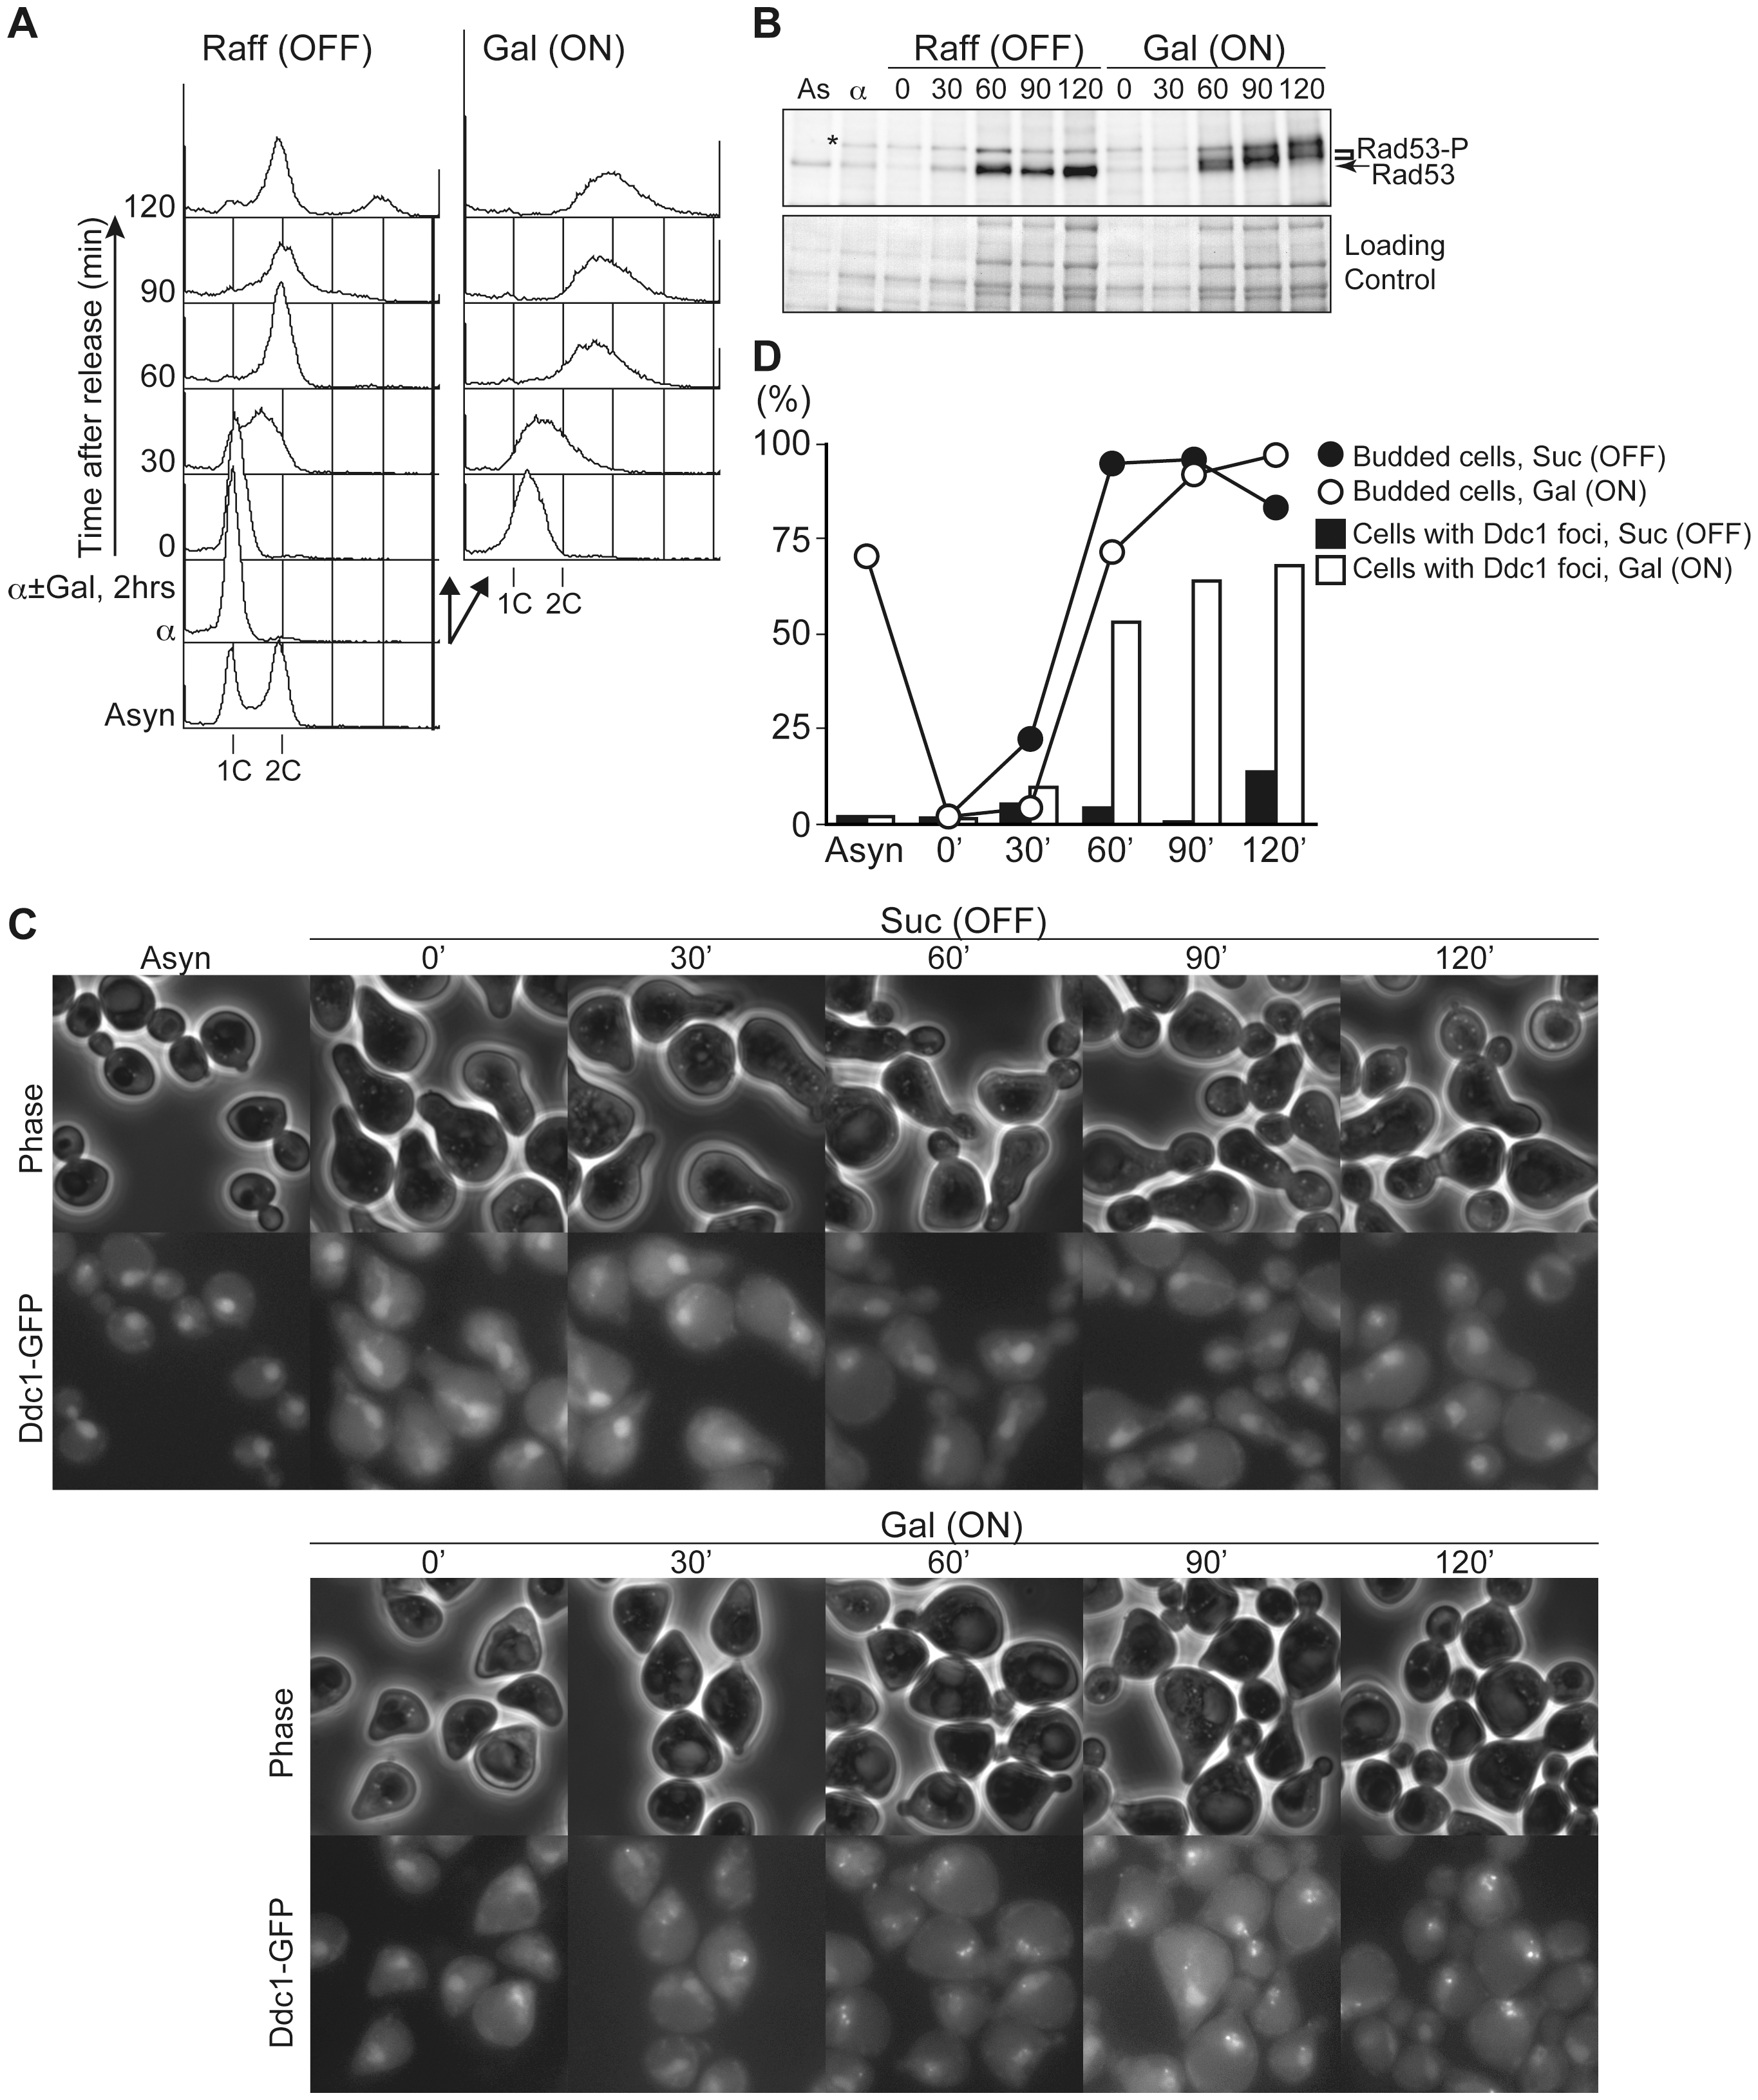 Untimely DNA replication conferred the accumulation of phosphorylated Rad53 and Ddc1 foci after S phase.